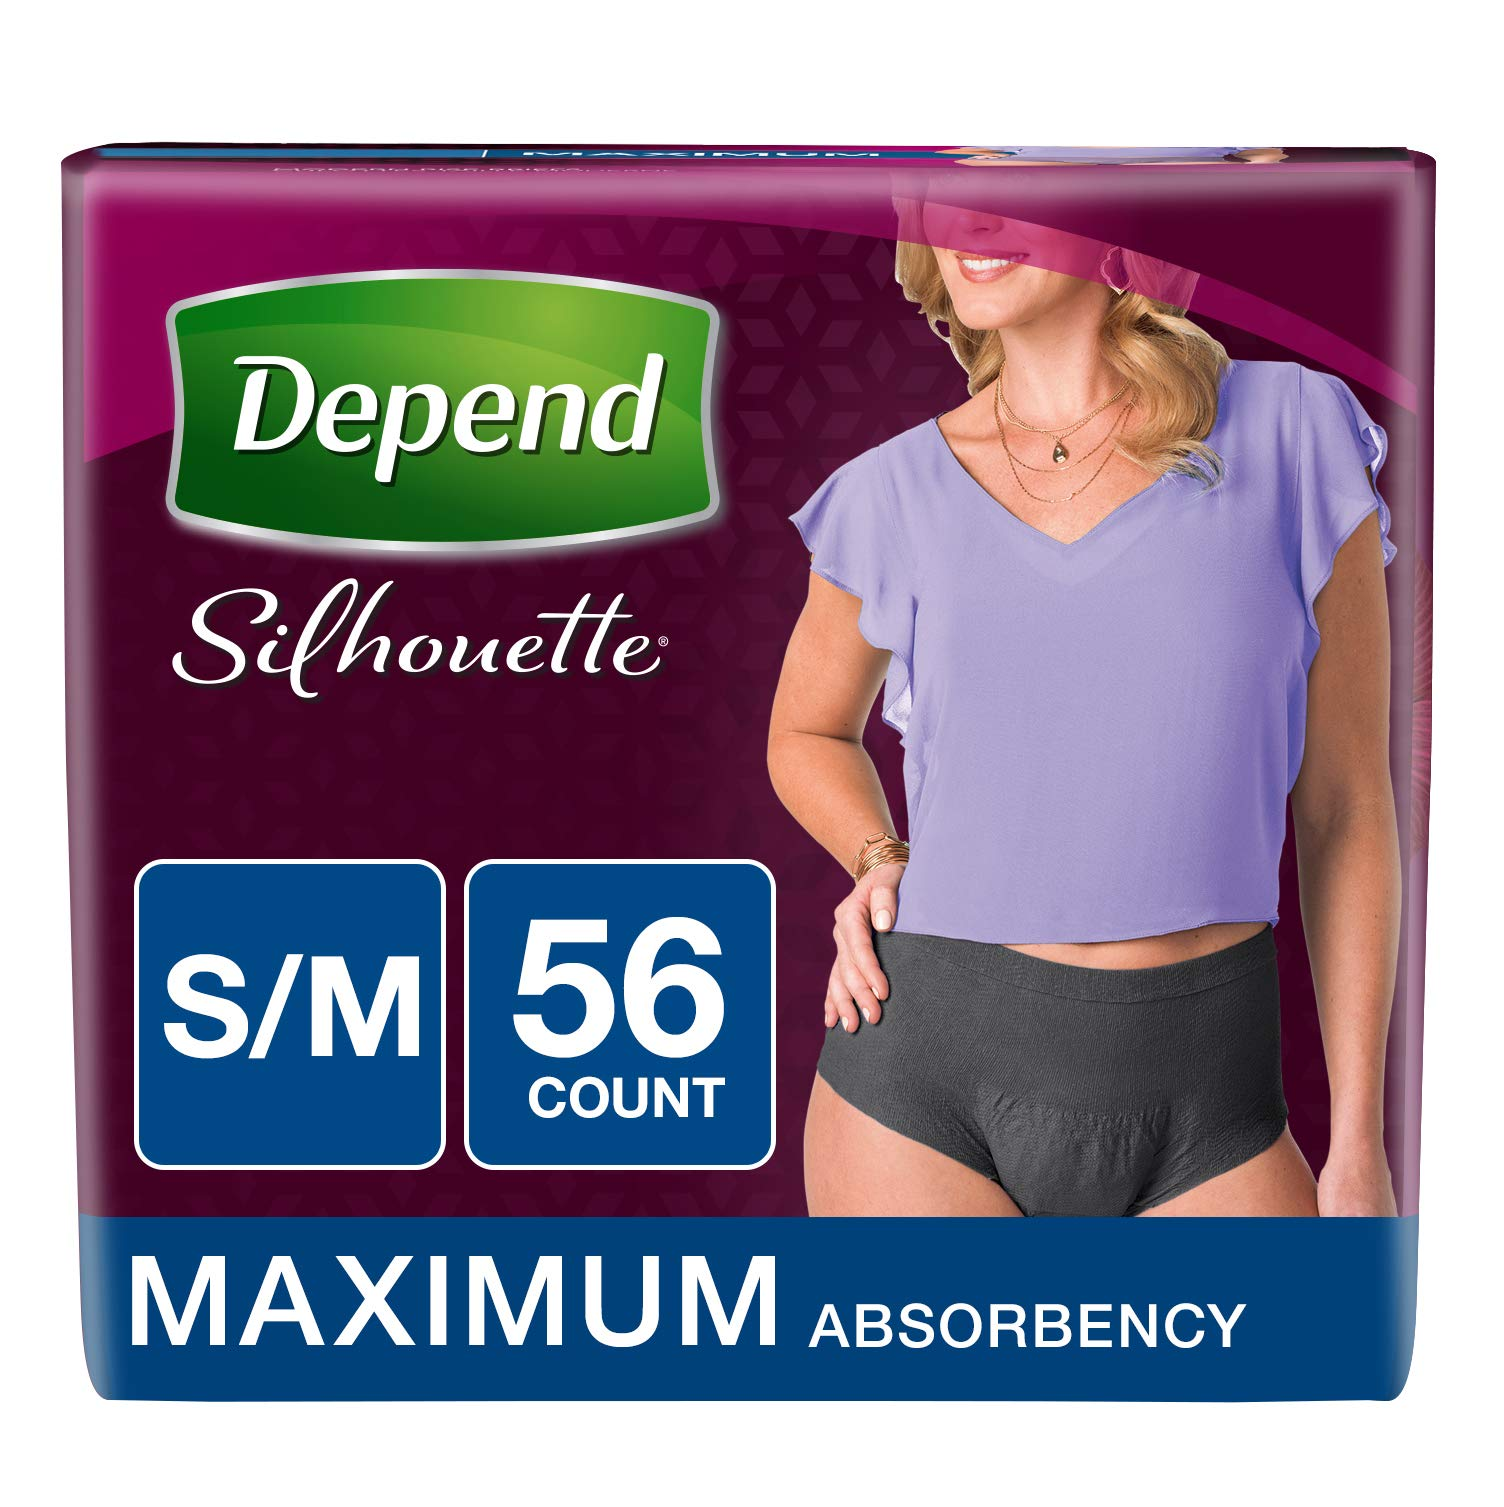 Depend Silhouette Incontinence Underwear for Women, Maximum Absorbency, S/M, Black, 56 Count by Depend